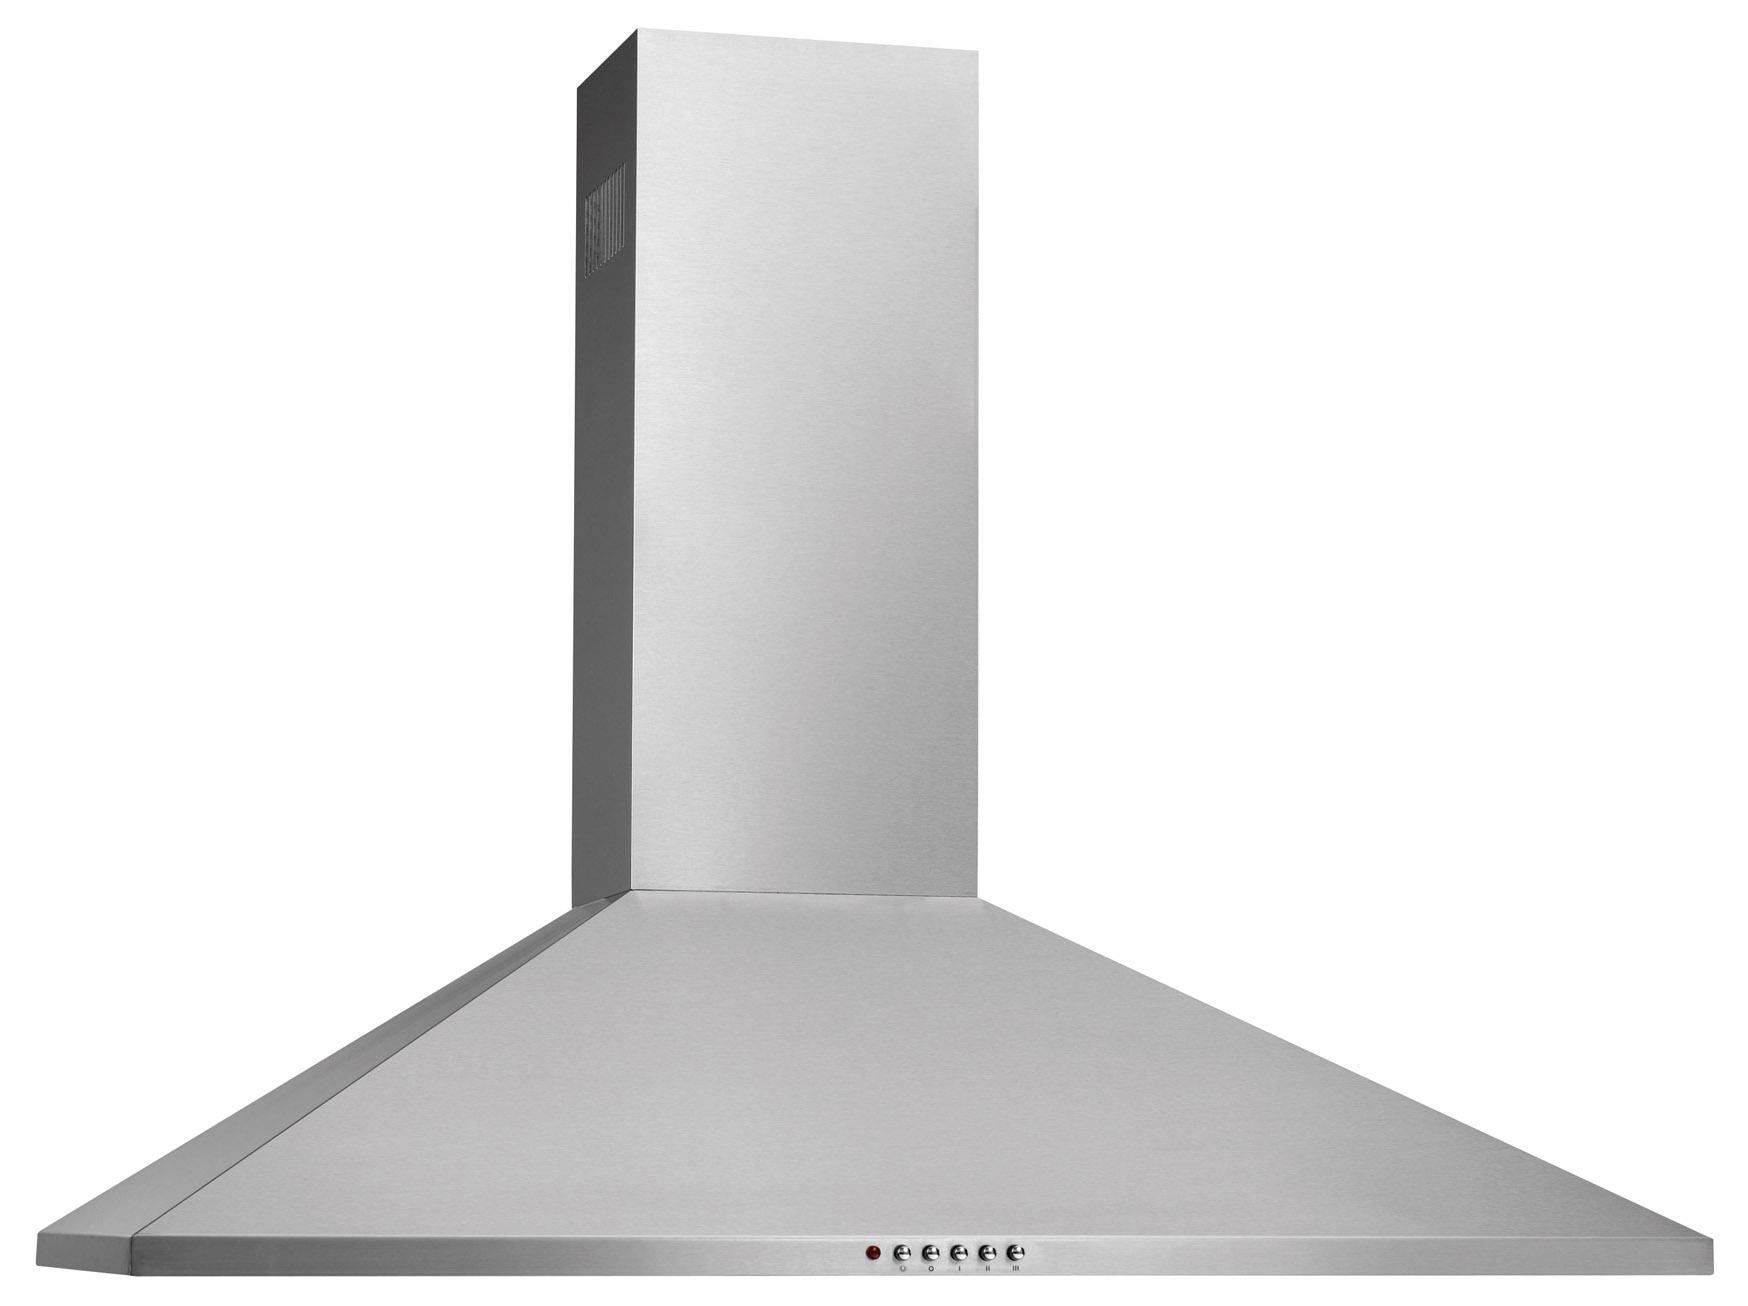 """Frigidaire Ventilation 36"""" Canopy Wall-Mounted Hood - Item Number: FHWC3655LS"""